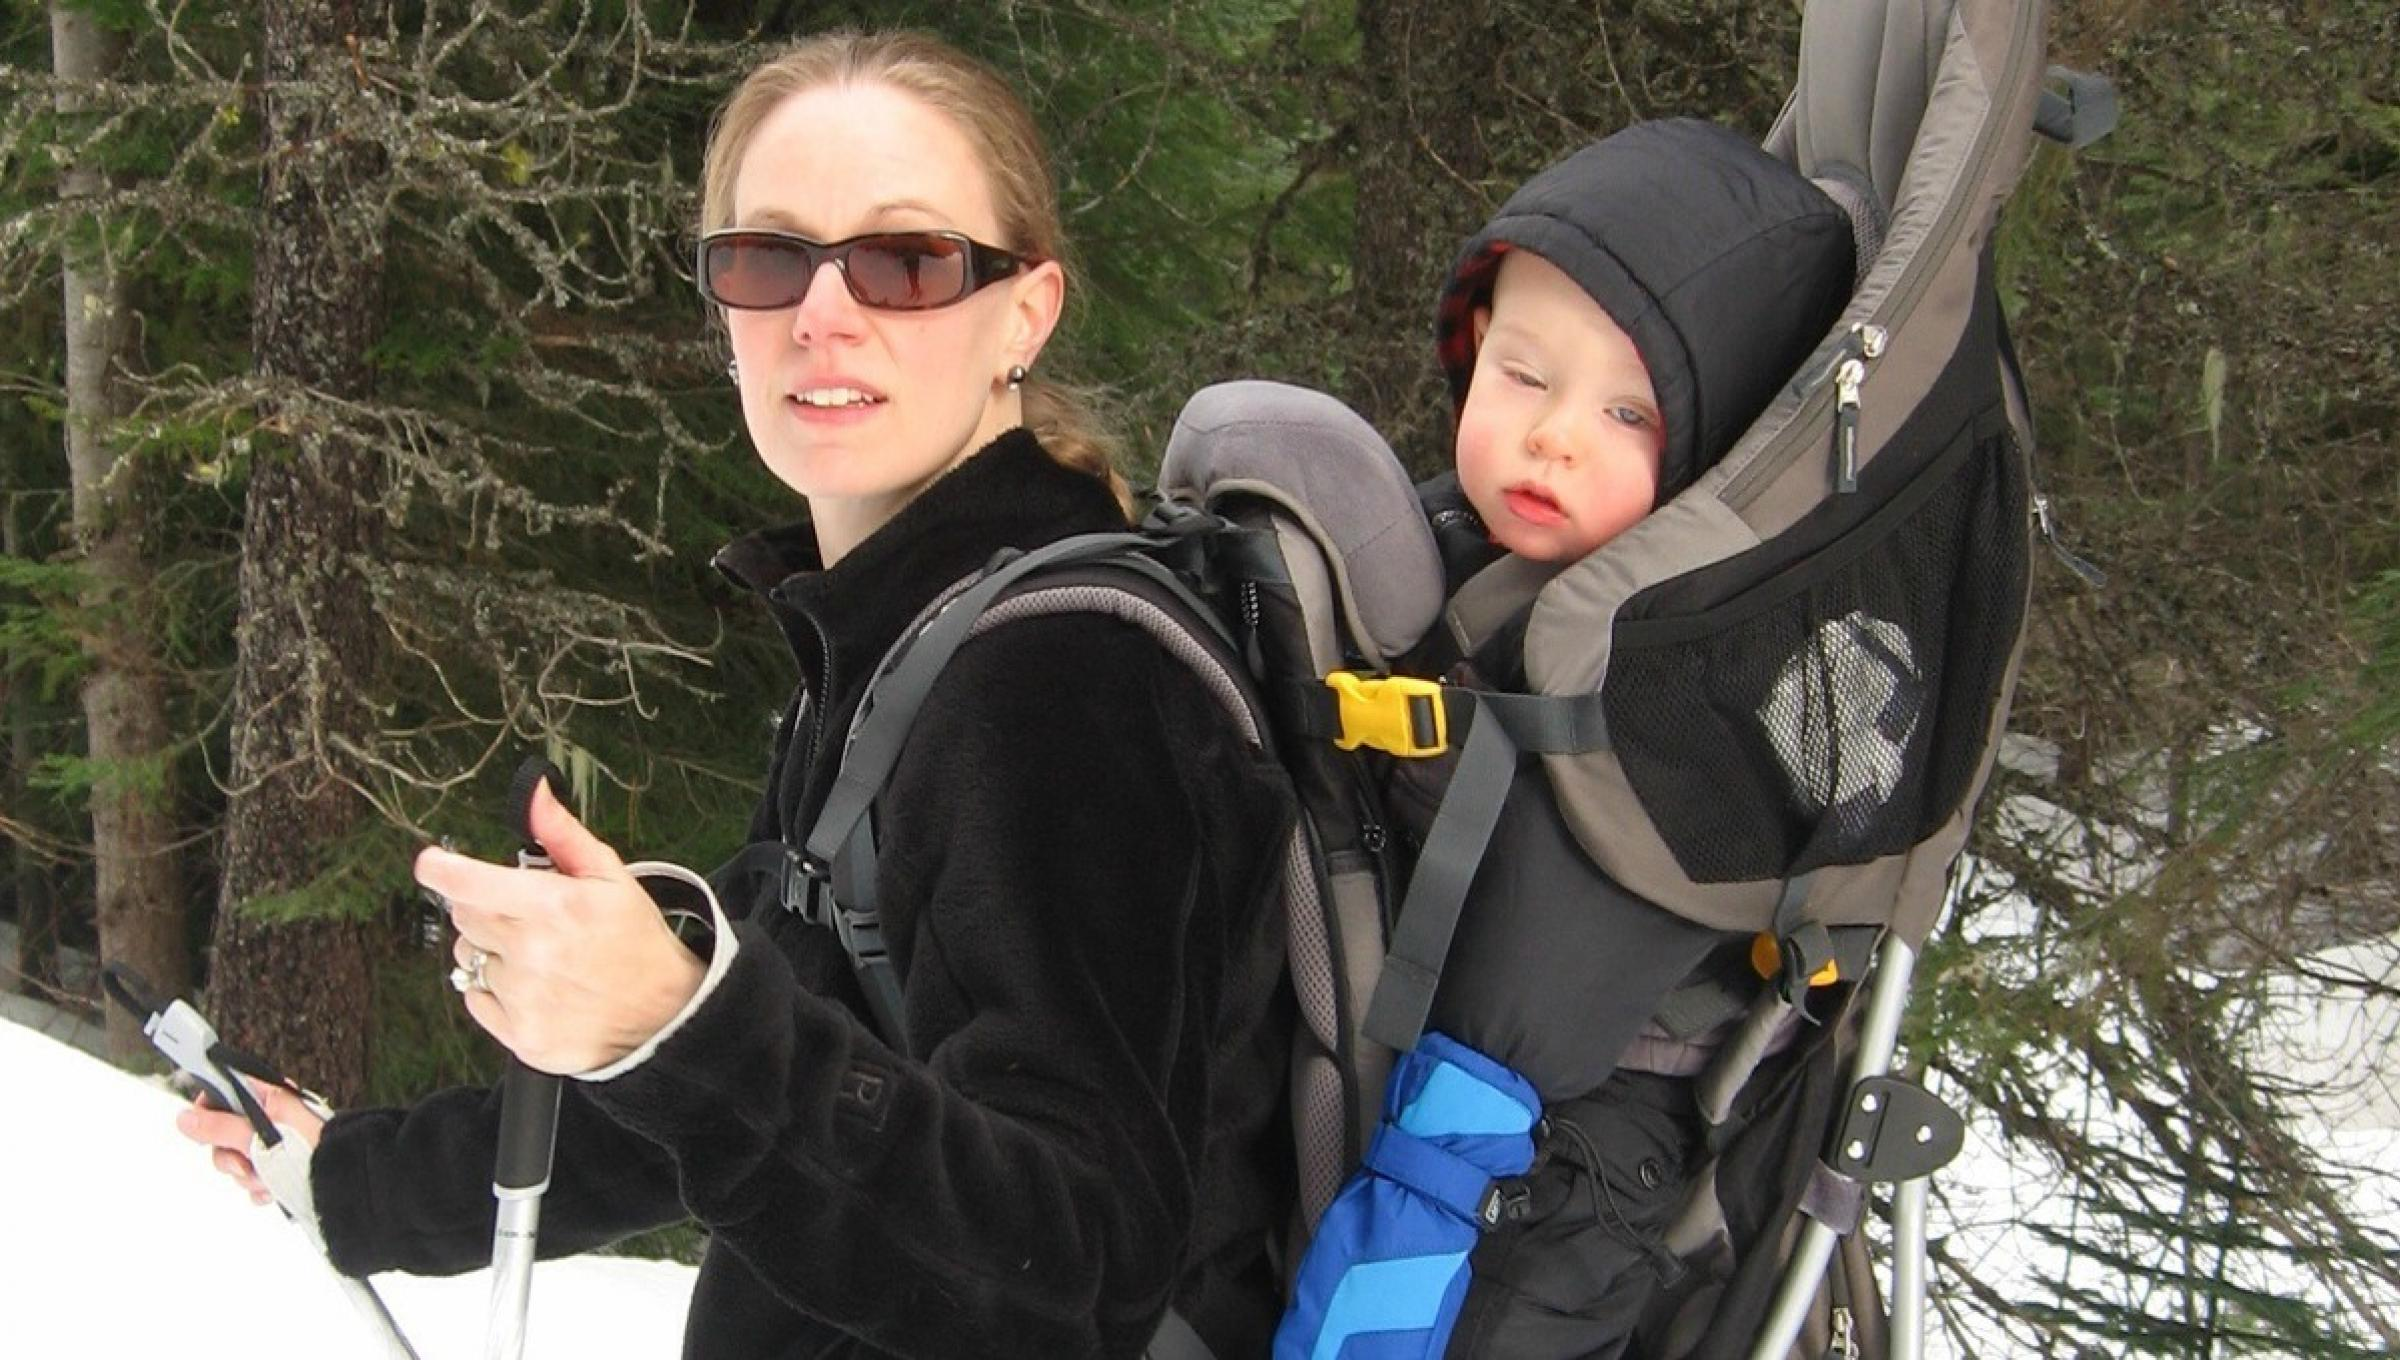 Lacey and her son cross country skiing